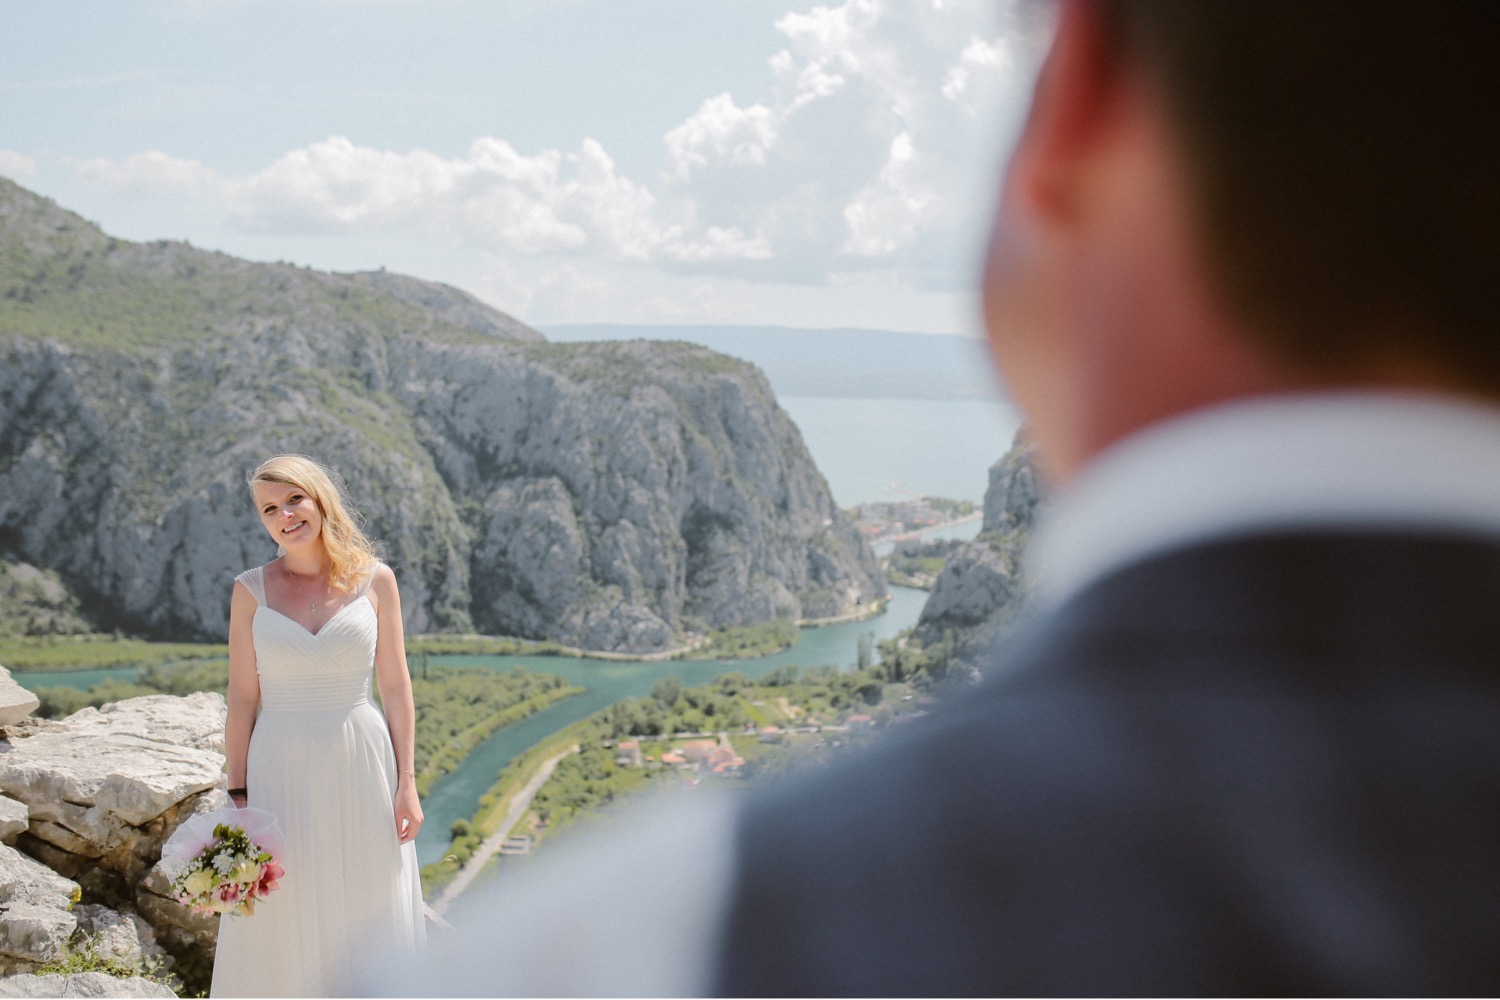 Croatia beach elopement hilke thomas love and ventures photography 65 | Croatia Elopement Photographer and Videographer